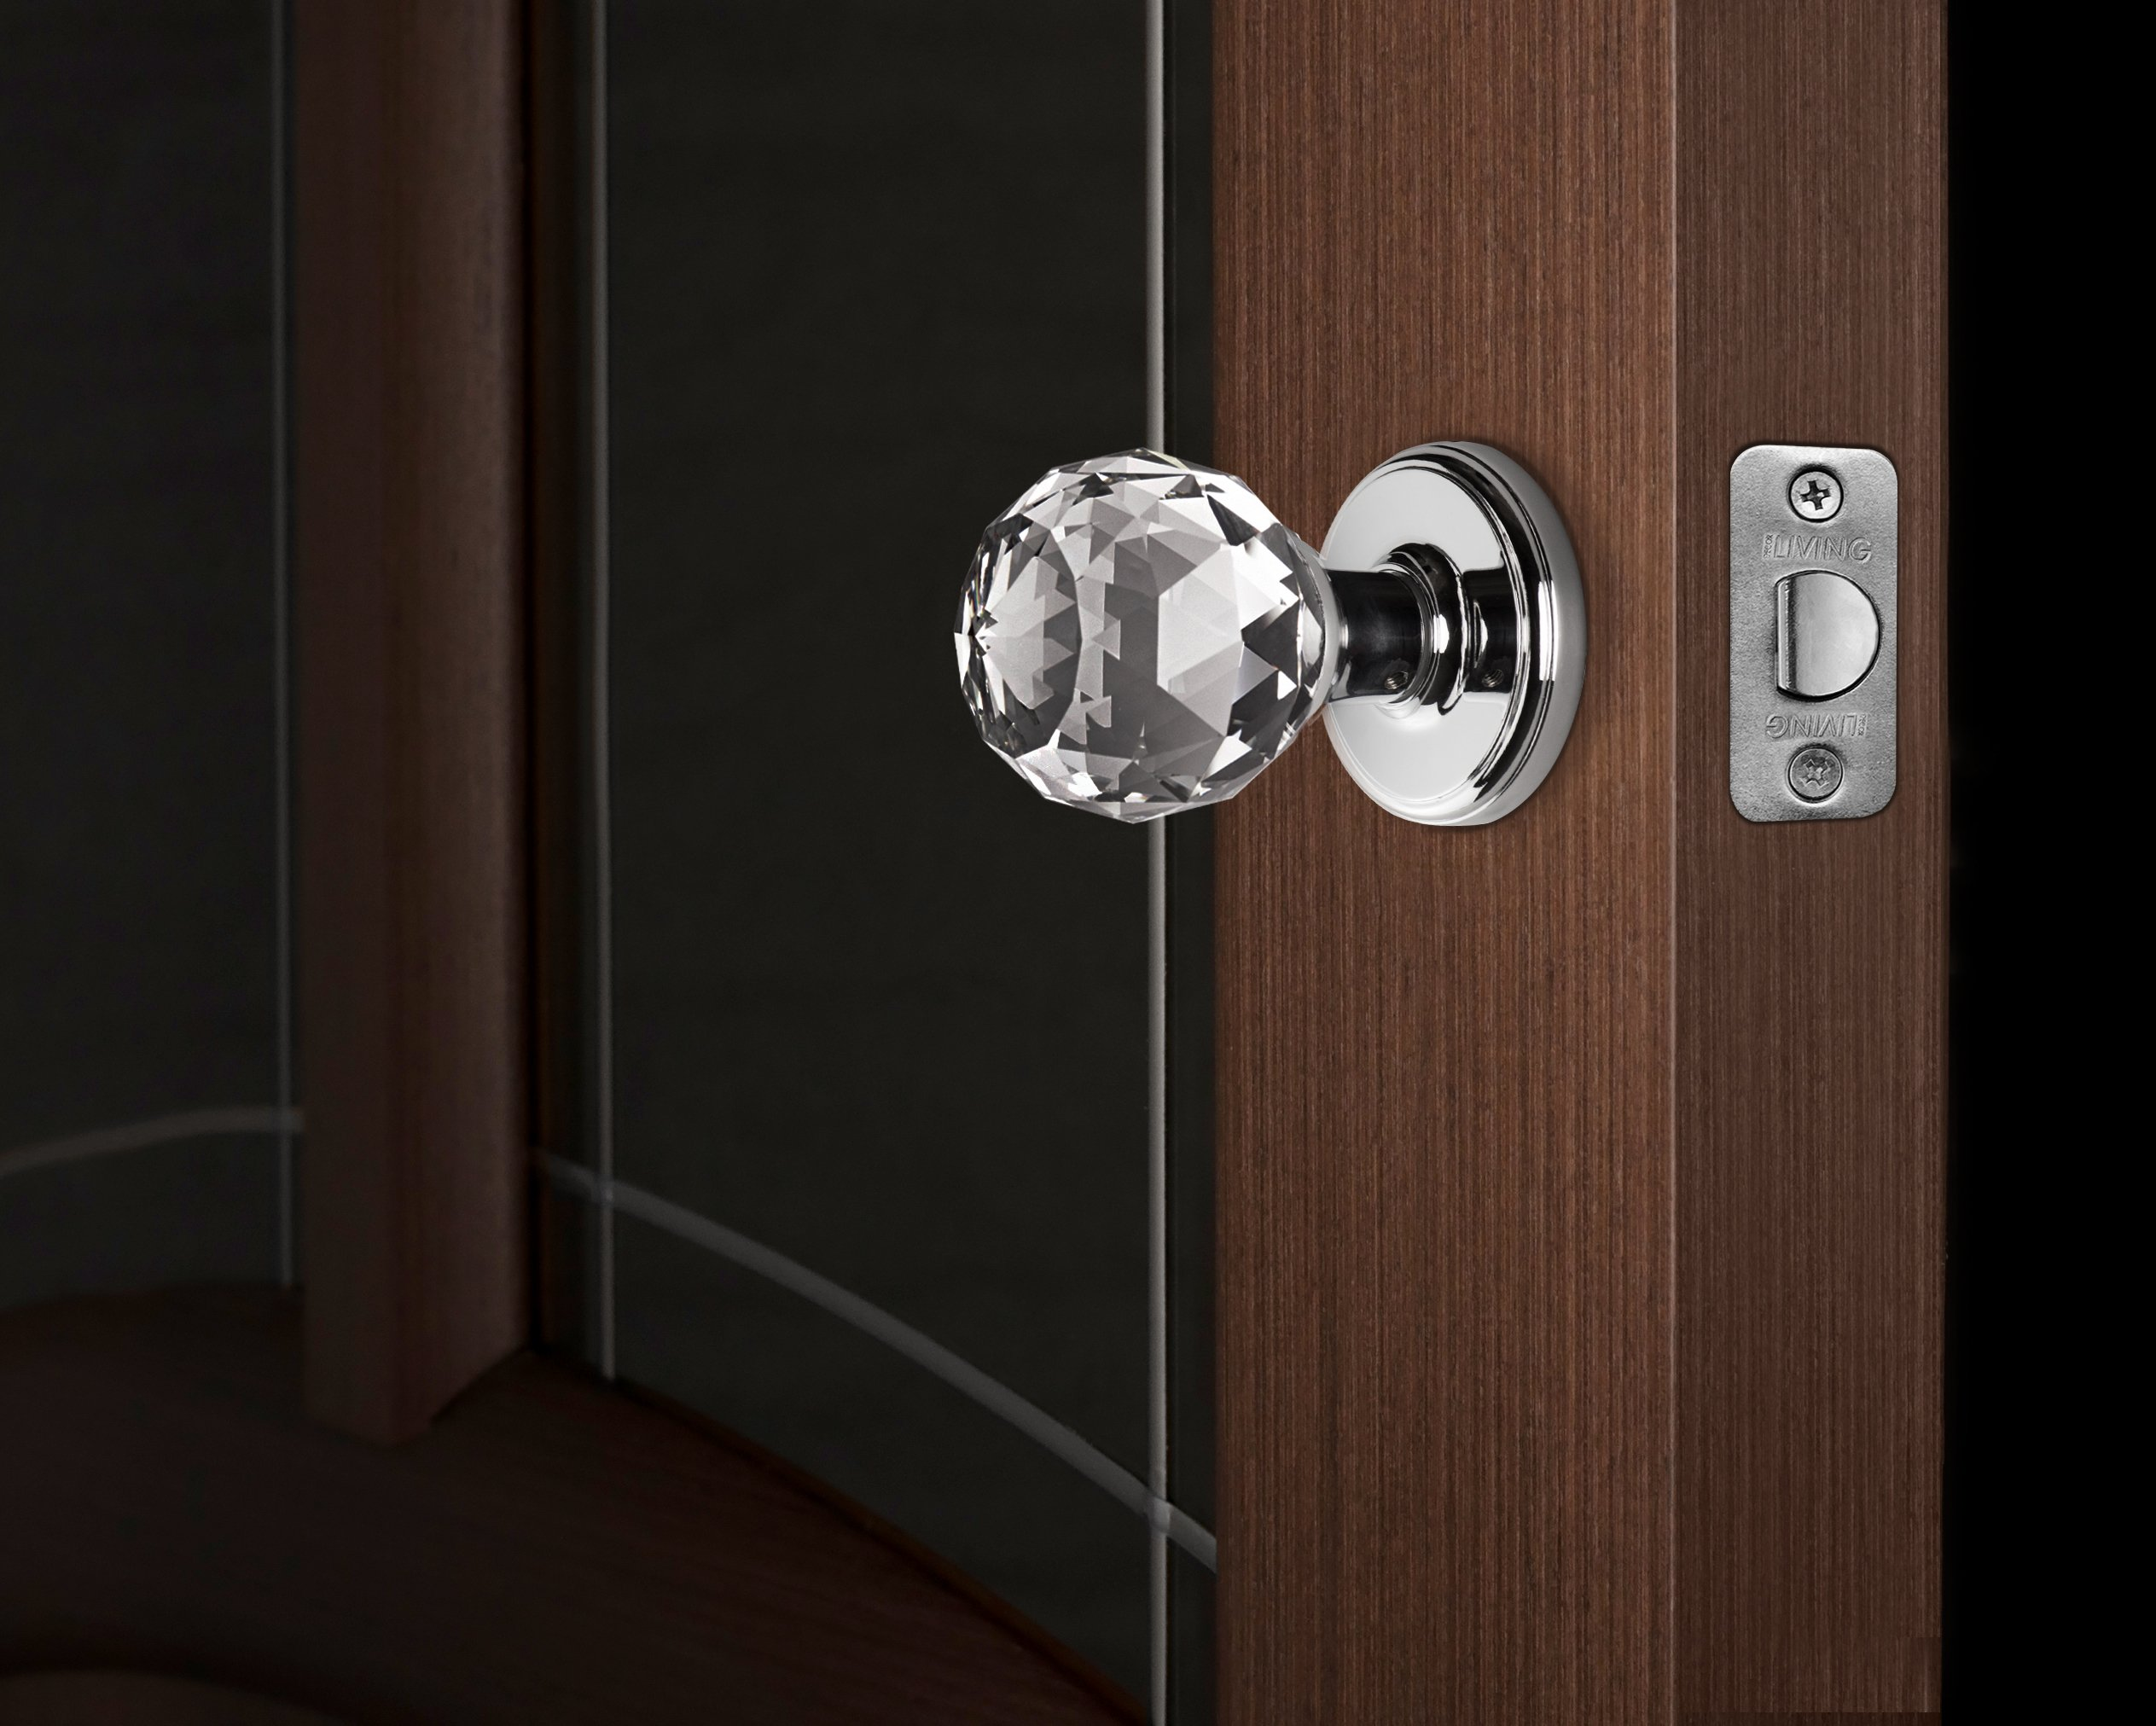 Decor Living, AMG and Enchante Accessories Faceted Crystal Door Knobs with Lock, Privacy Function for Bed and Bath, IRIS Collection, Polished Chrome by DECOR LIVING (Image #4)